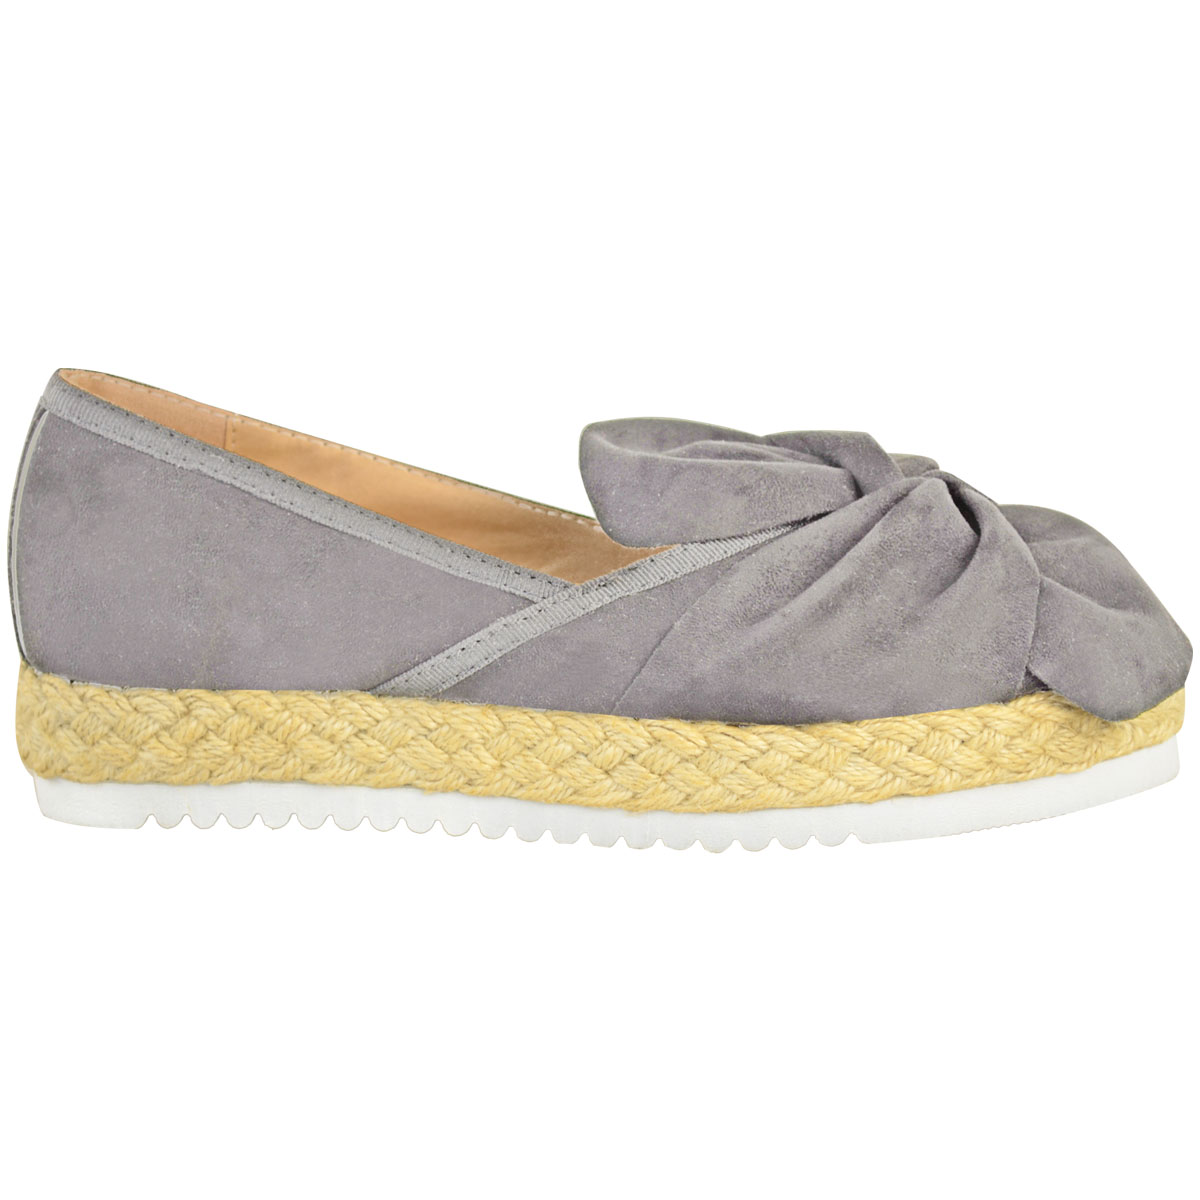 Womens-Ladies-Espadrilles-Flat-Pom-Pom-Sandals-Slip-On-Strappy-Comfy-Size-Shoes thumbnail 39